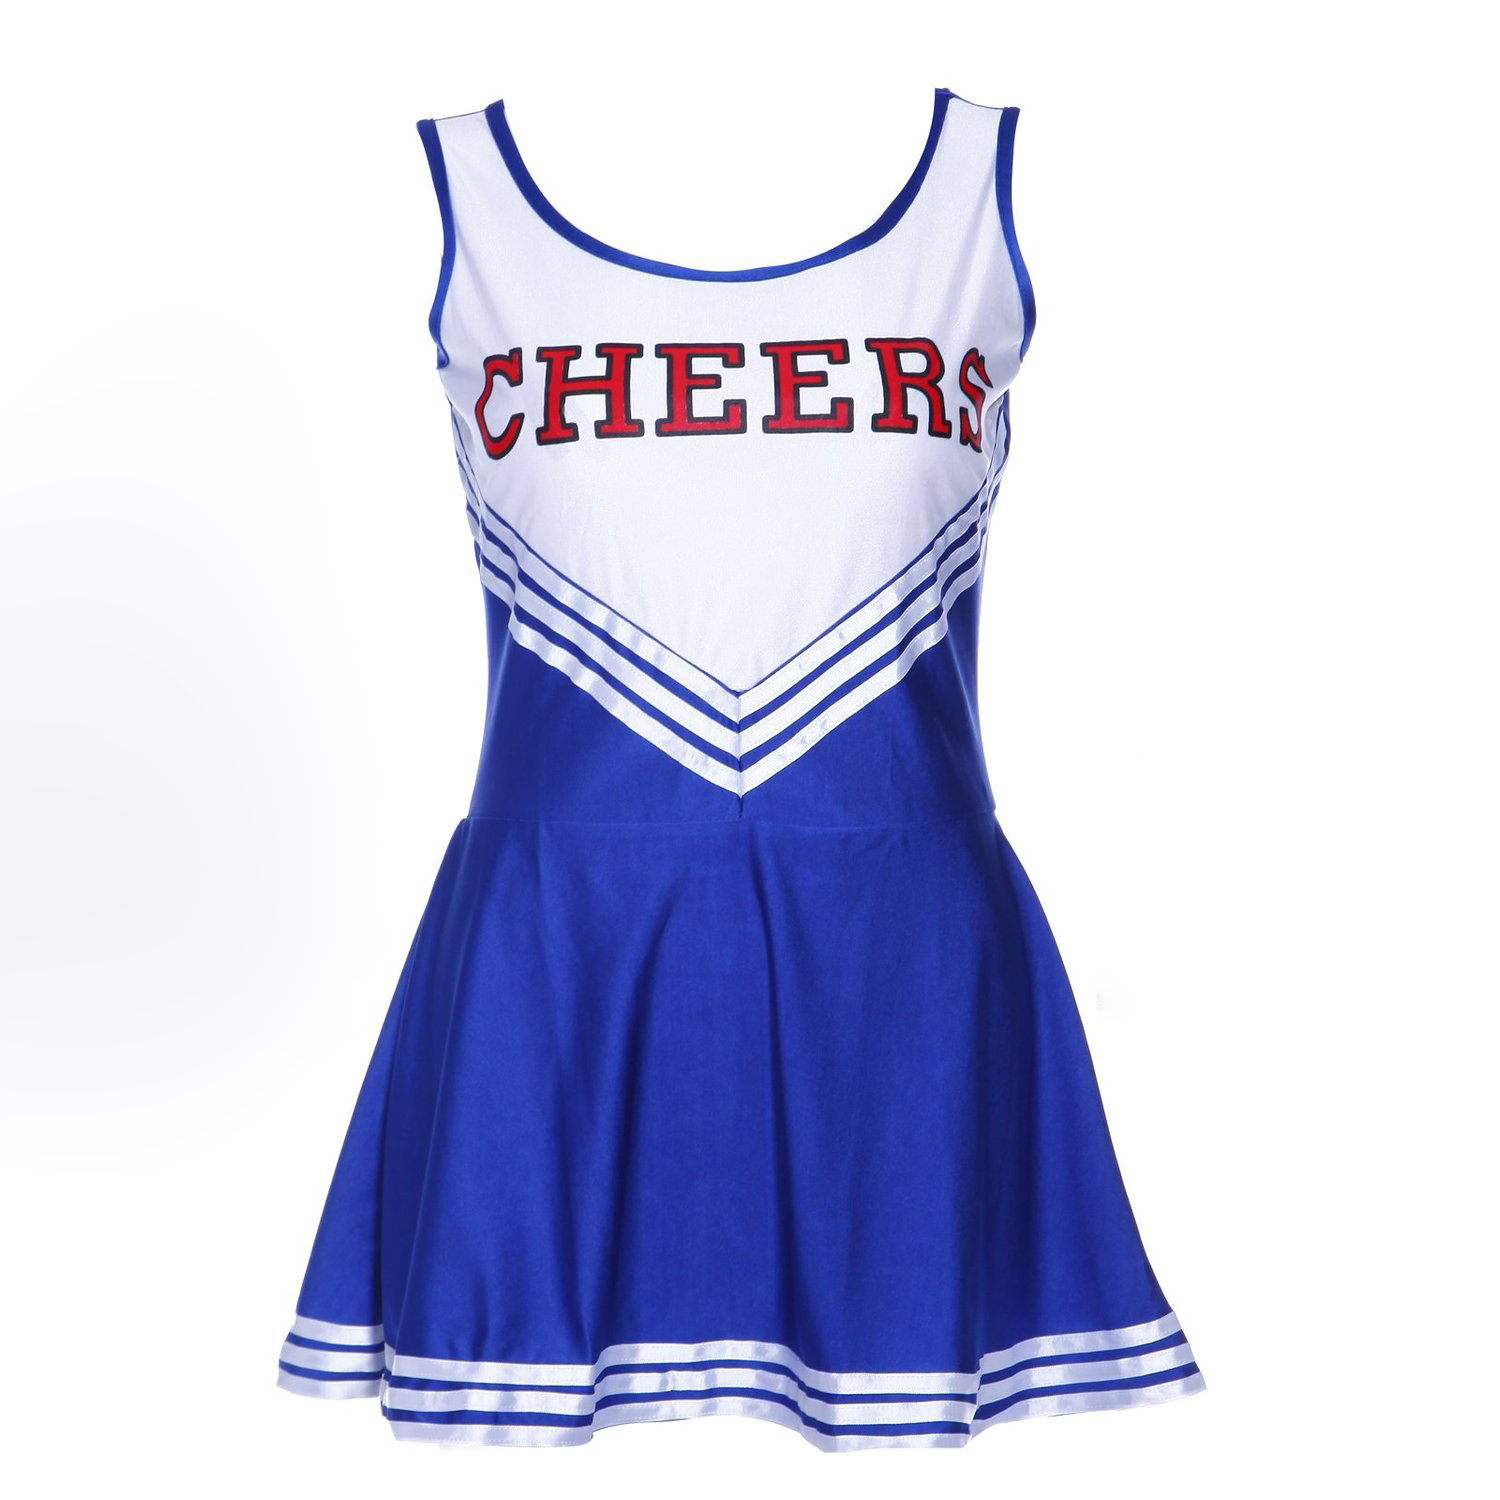 New Sale Pom-pom girl tank top dress cheer leader blue suit costume XL (42-44) school football